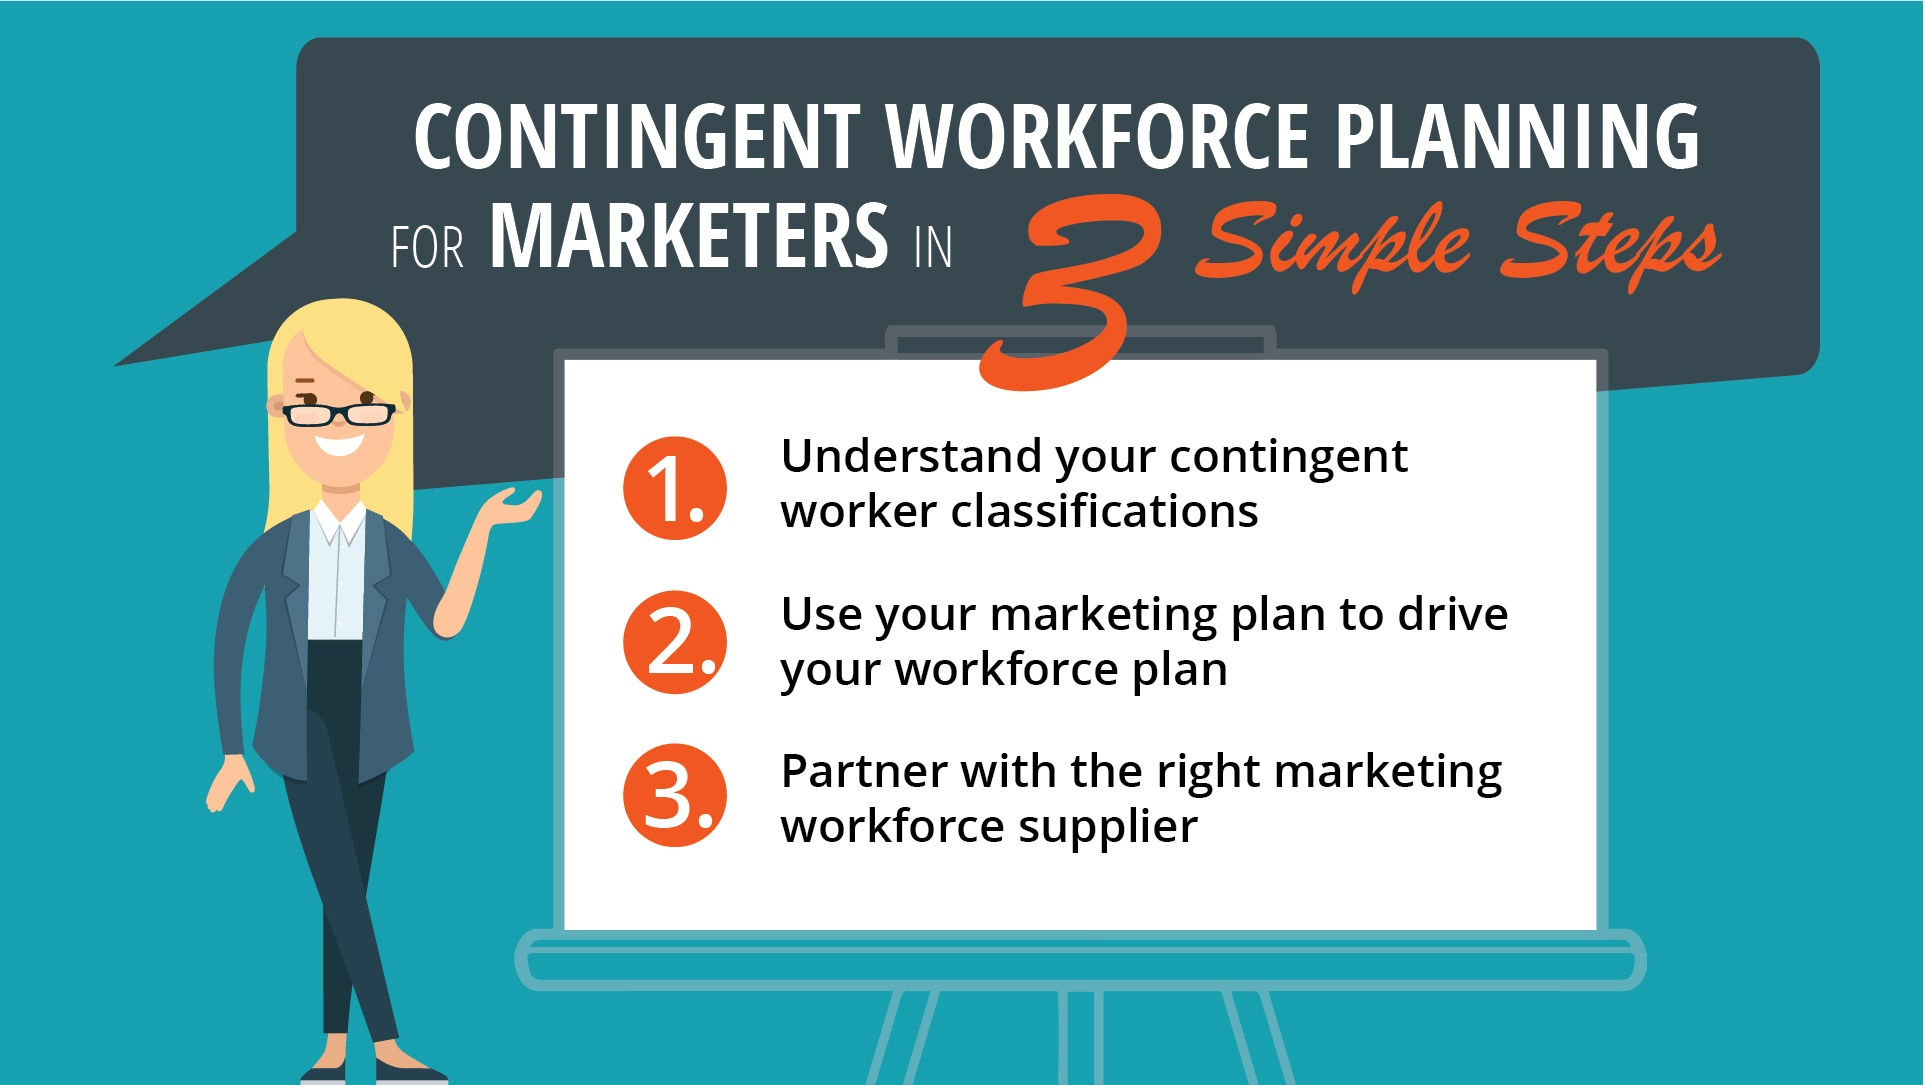 Contingent workforce planning in 3 simple steps.